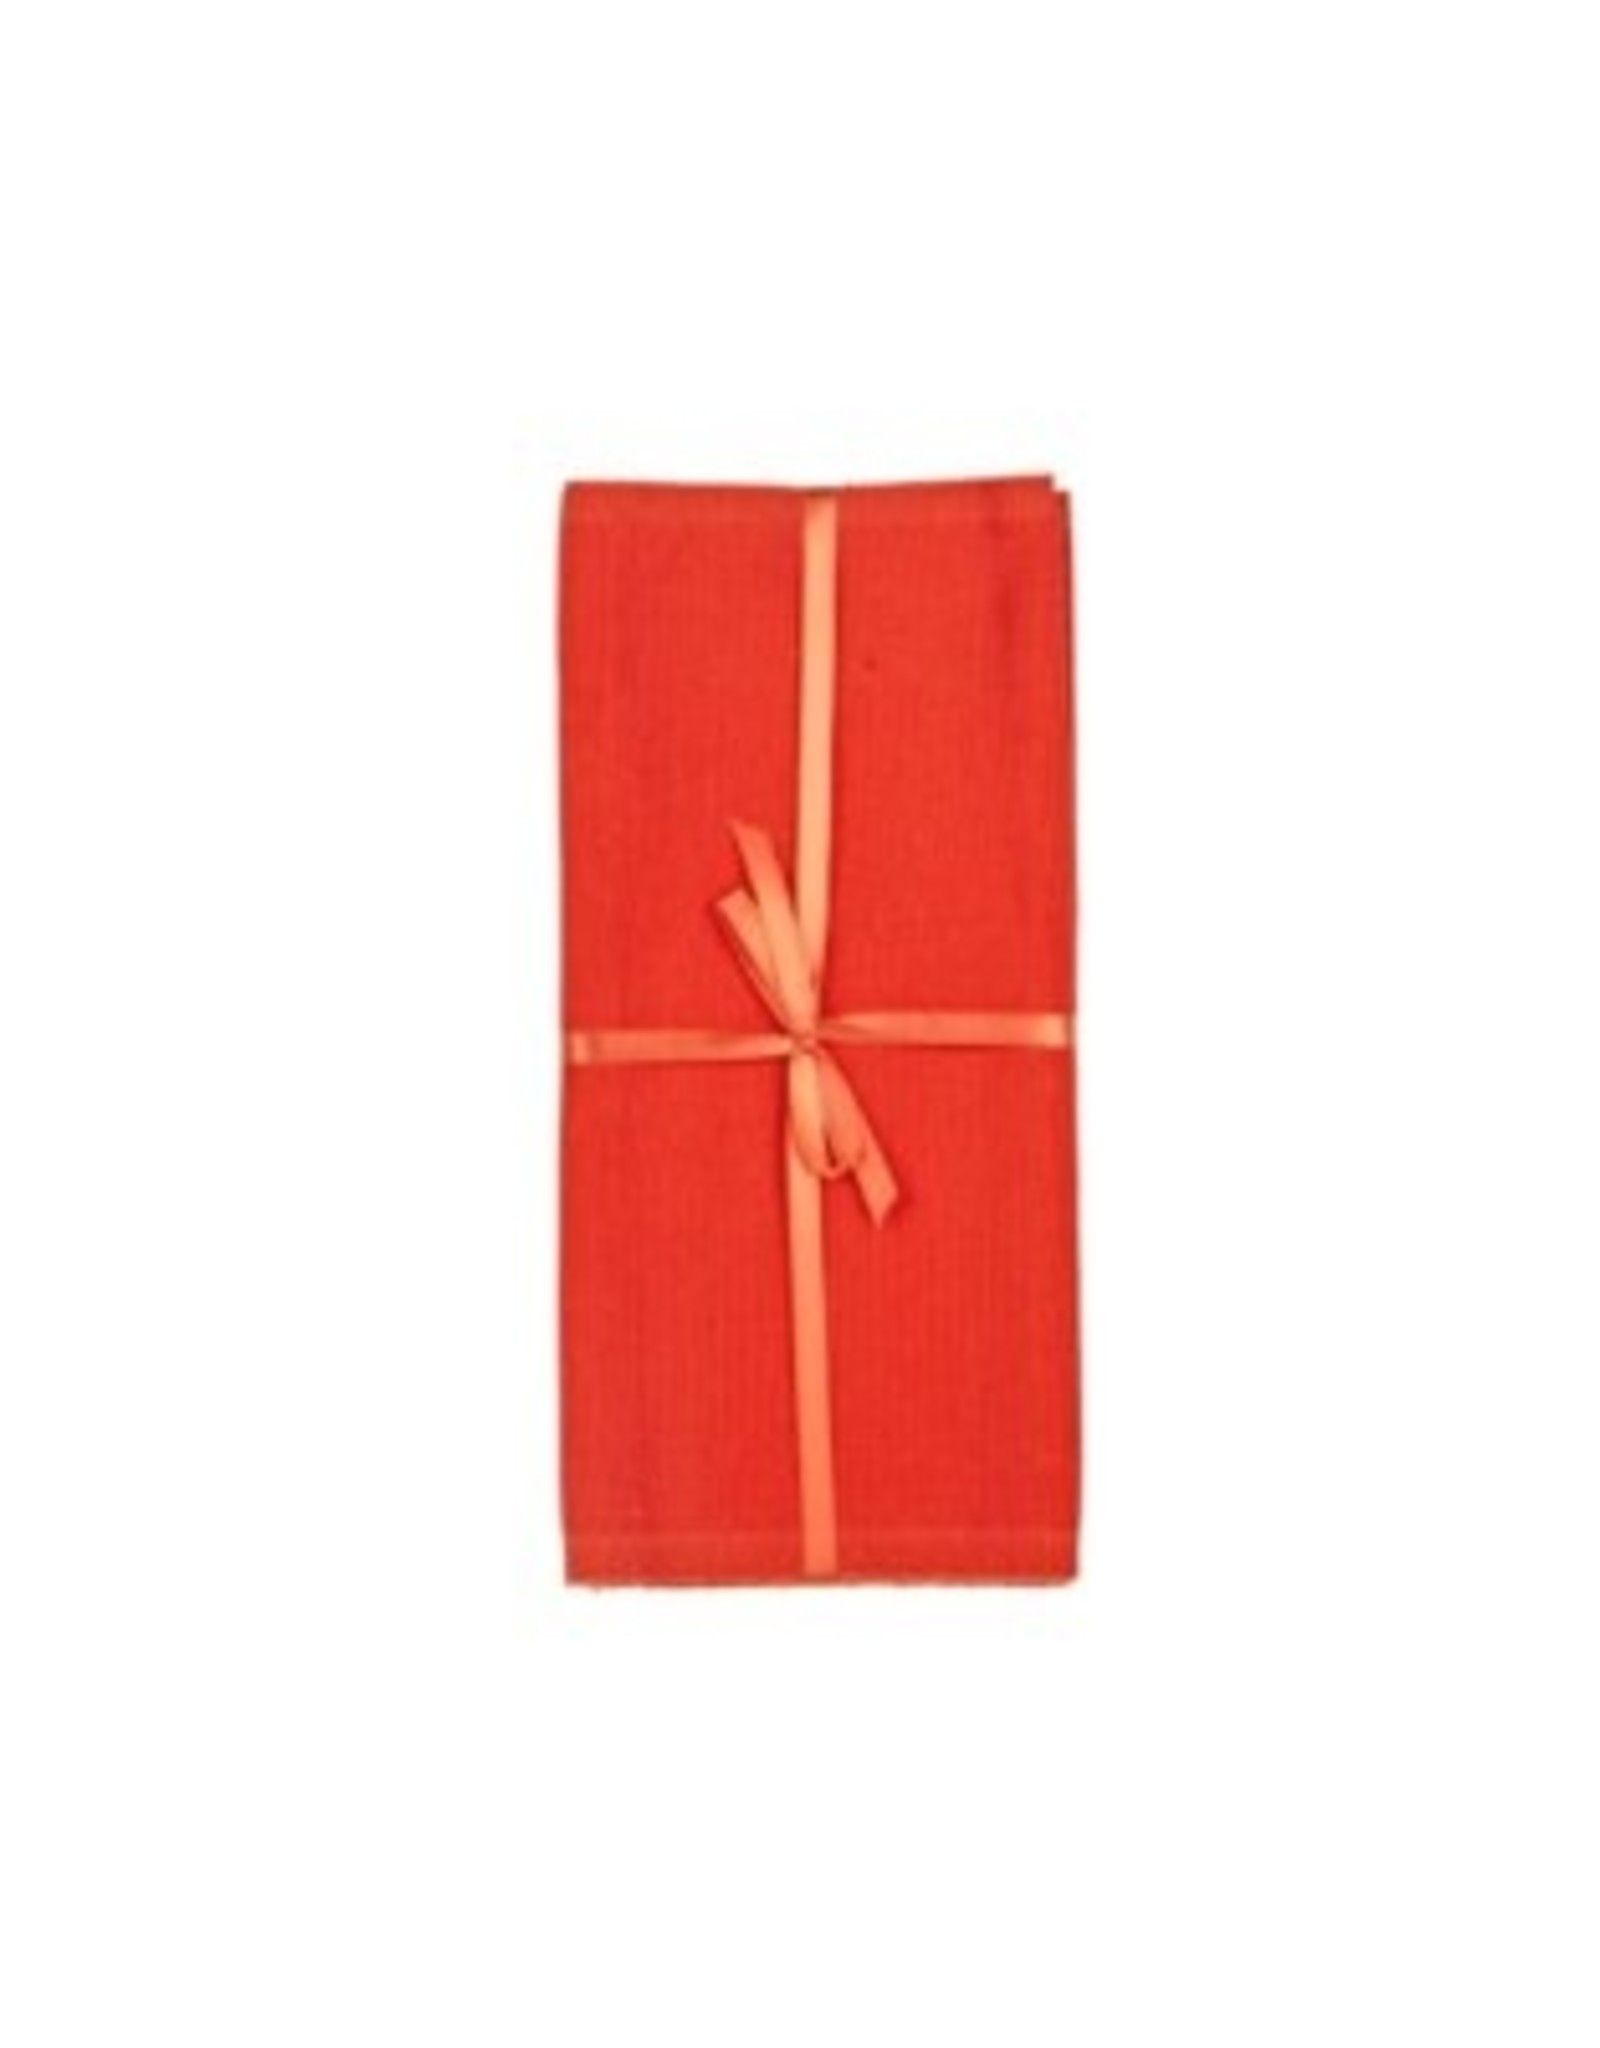 Placemat Harman Primary Ribbed Tangerine Set/4